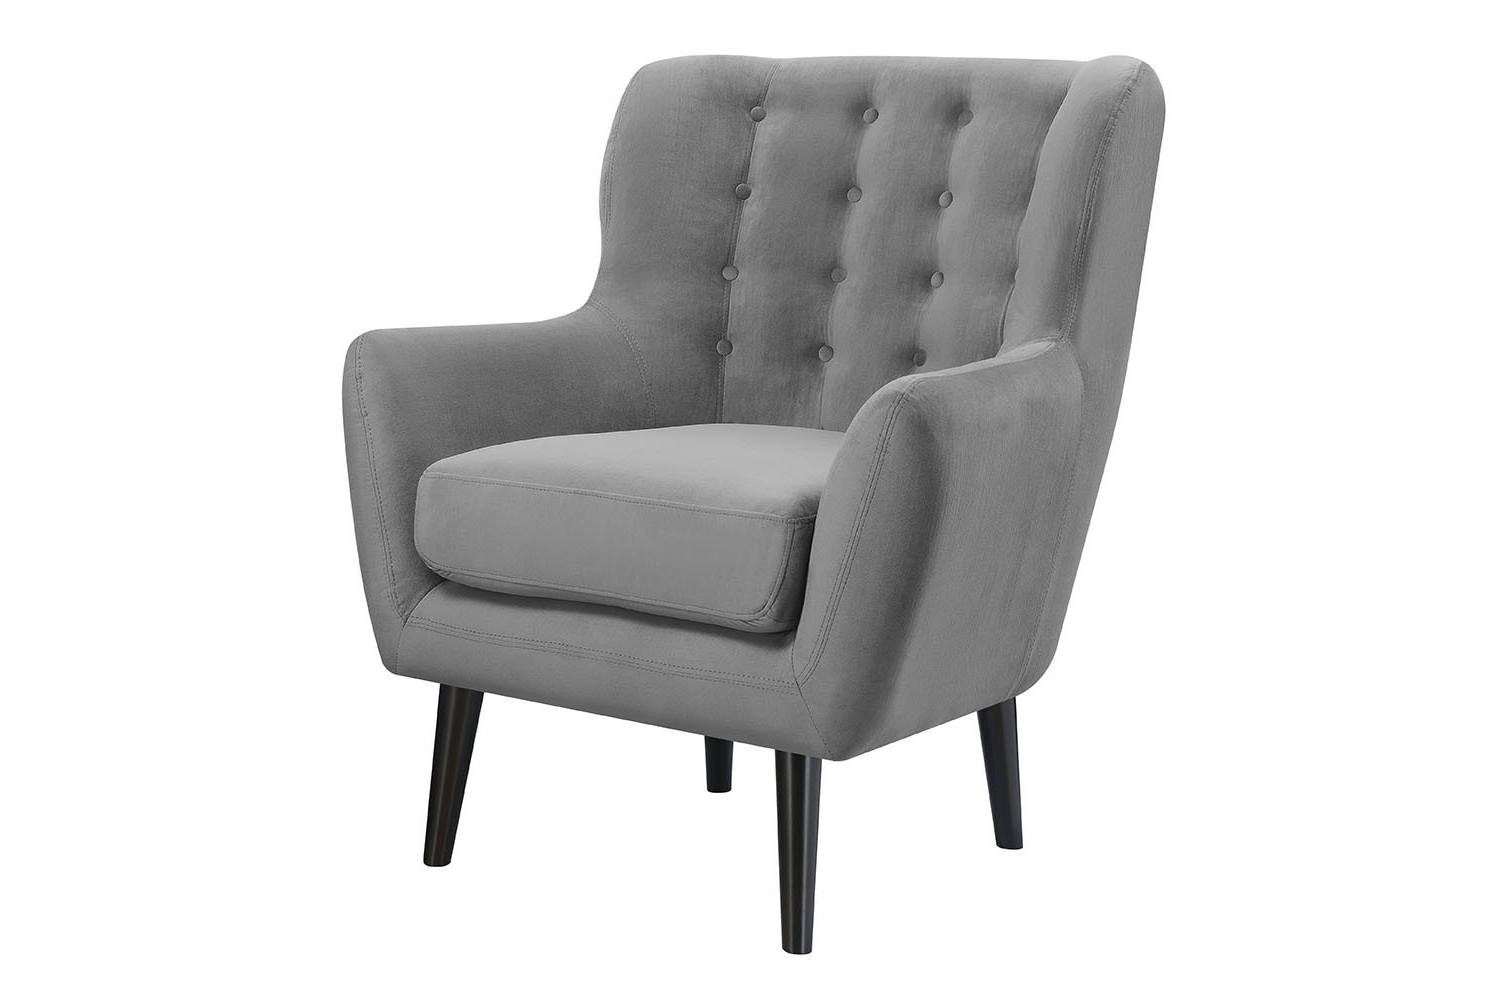 Lucy Dark Grey Sofa Chairs With Newest Accent Chairs (View 13 of 20)